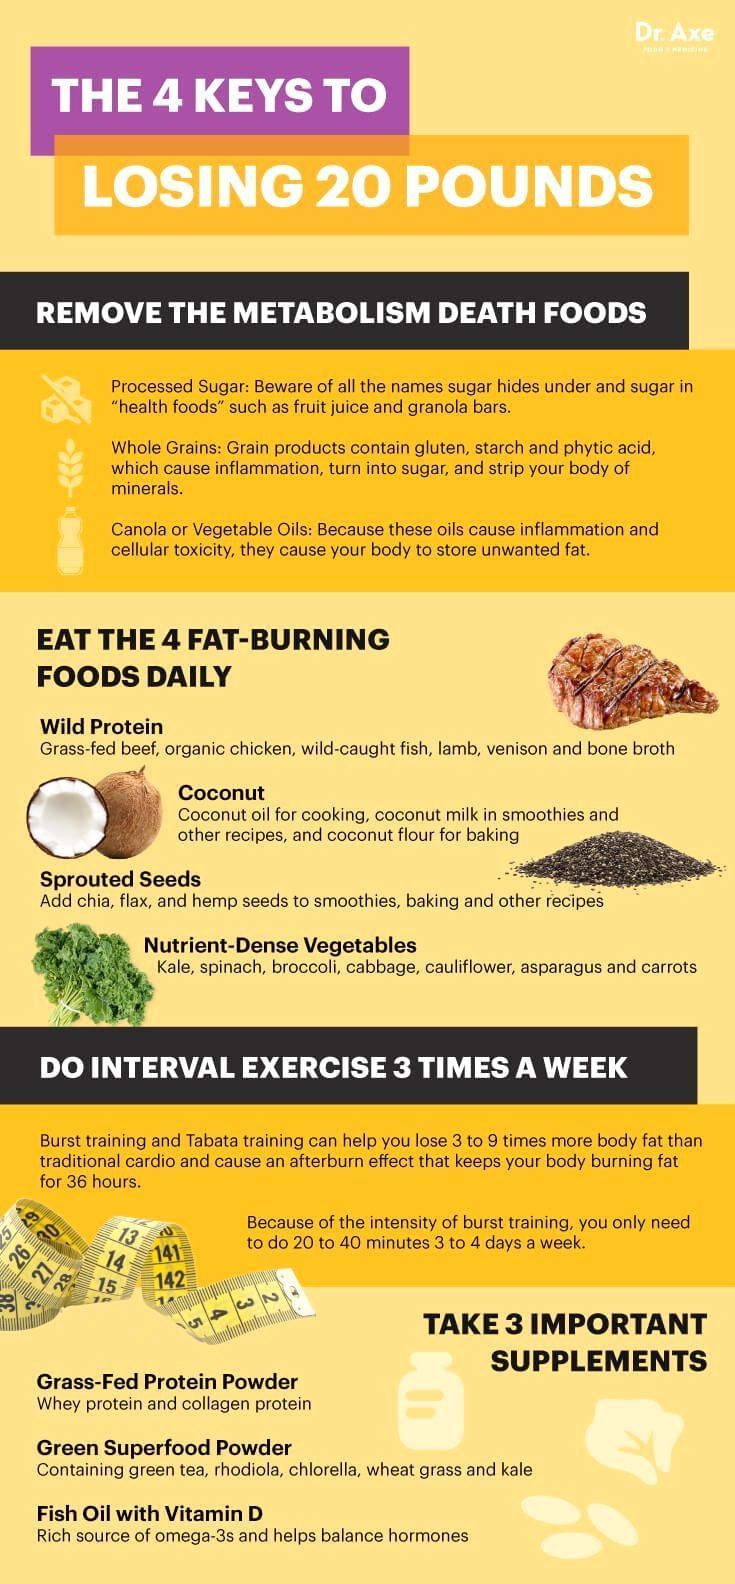 Tips for fast weight loss at home #rapidweightloss  | effective diets to lose weight fast#weightloss...